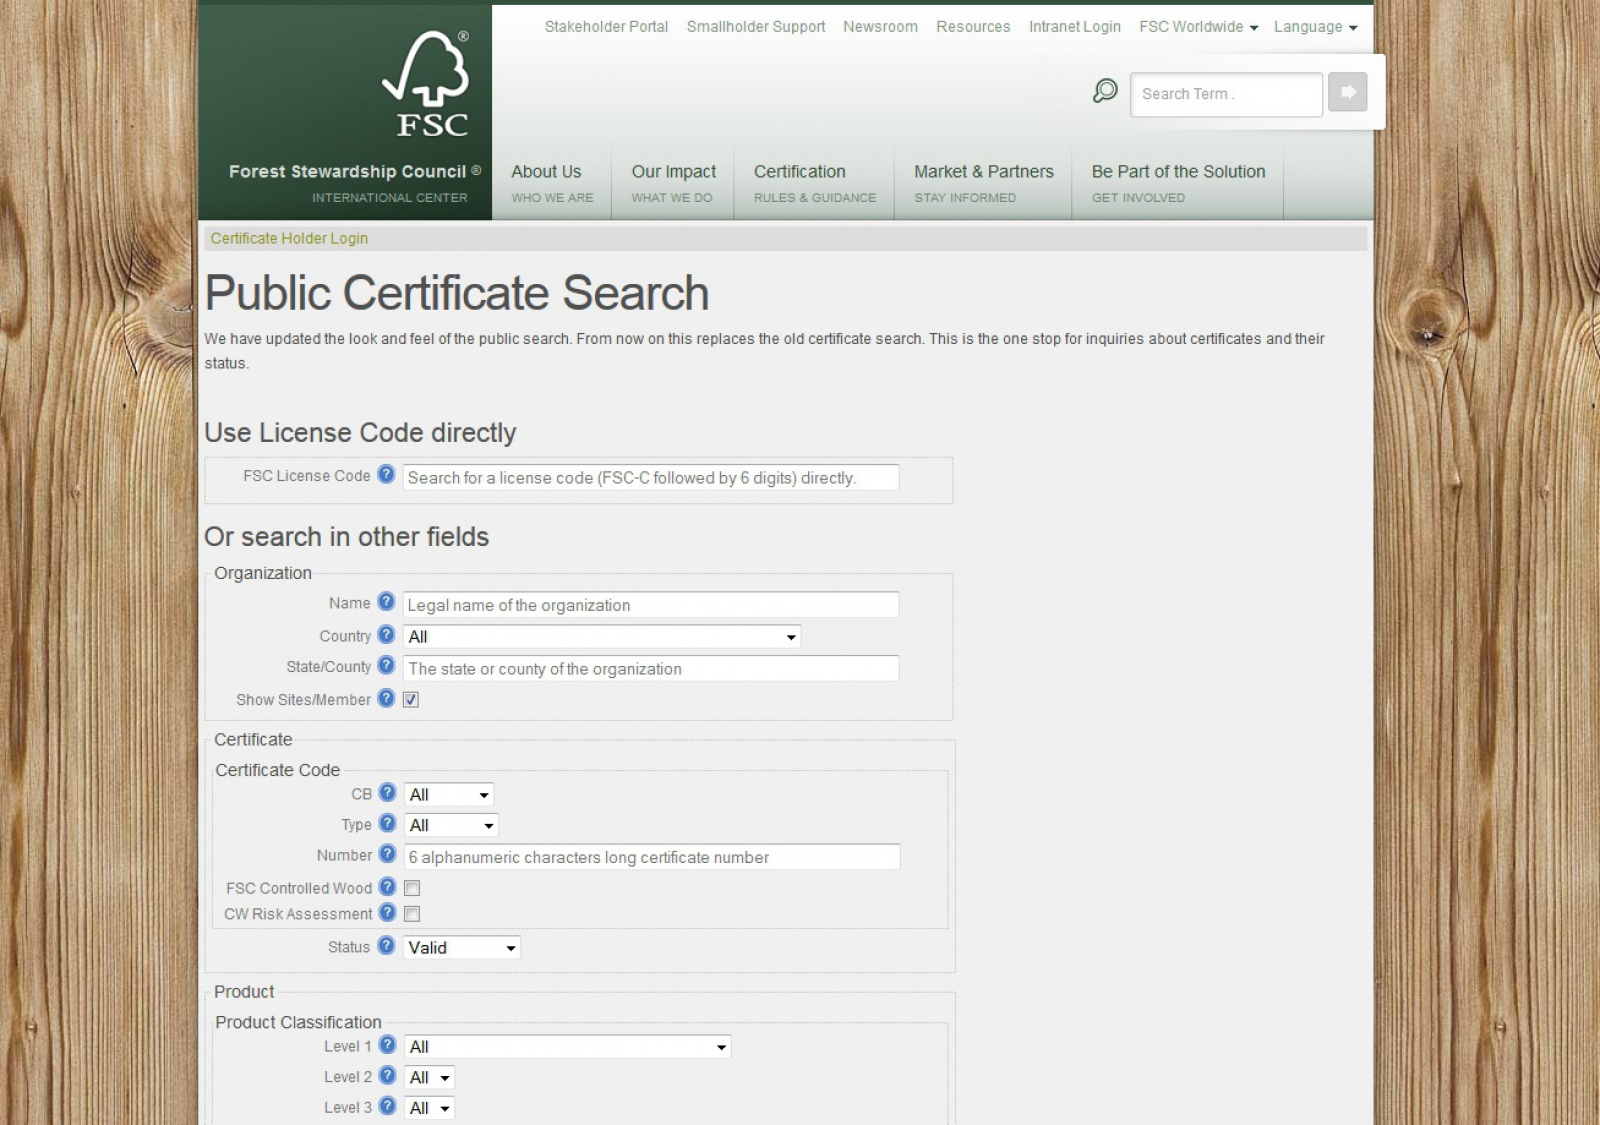 Fsc Launches A New Version Of Its Public Certificate Search 2012